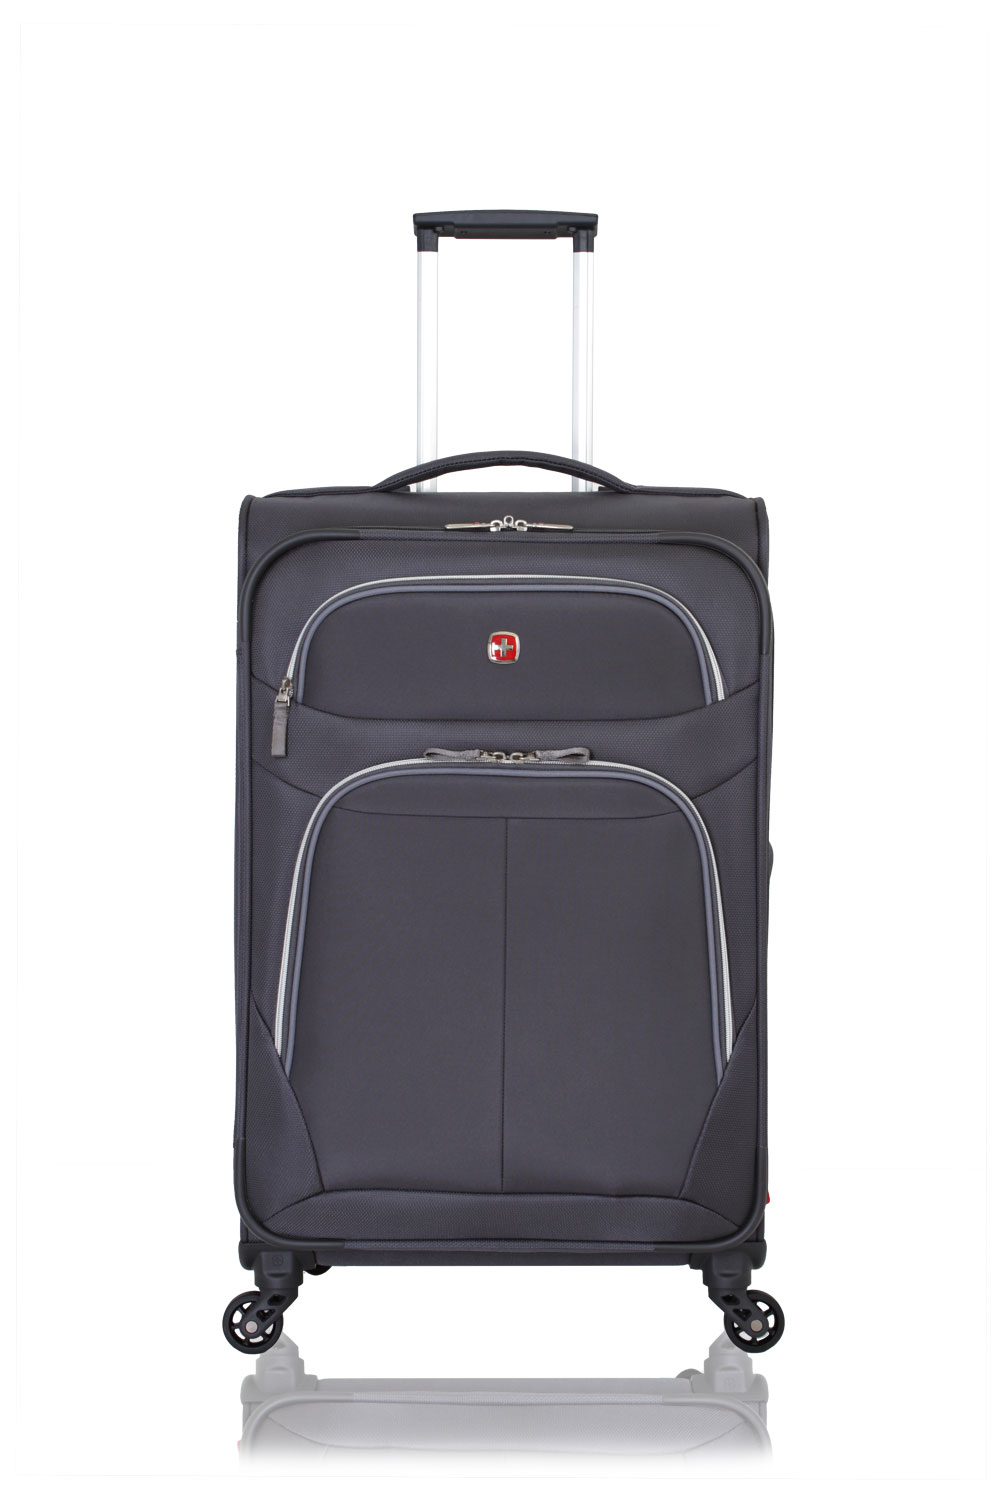 "SWISSGEAR 6270 24"" Expandable Liteweight Spinner Luggage"